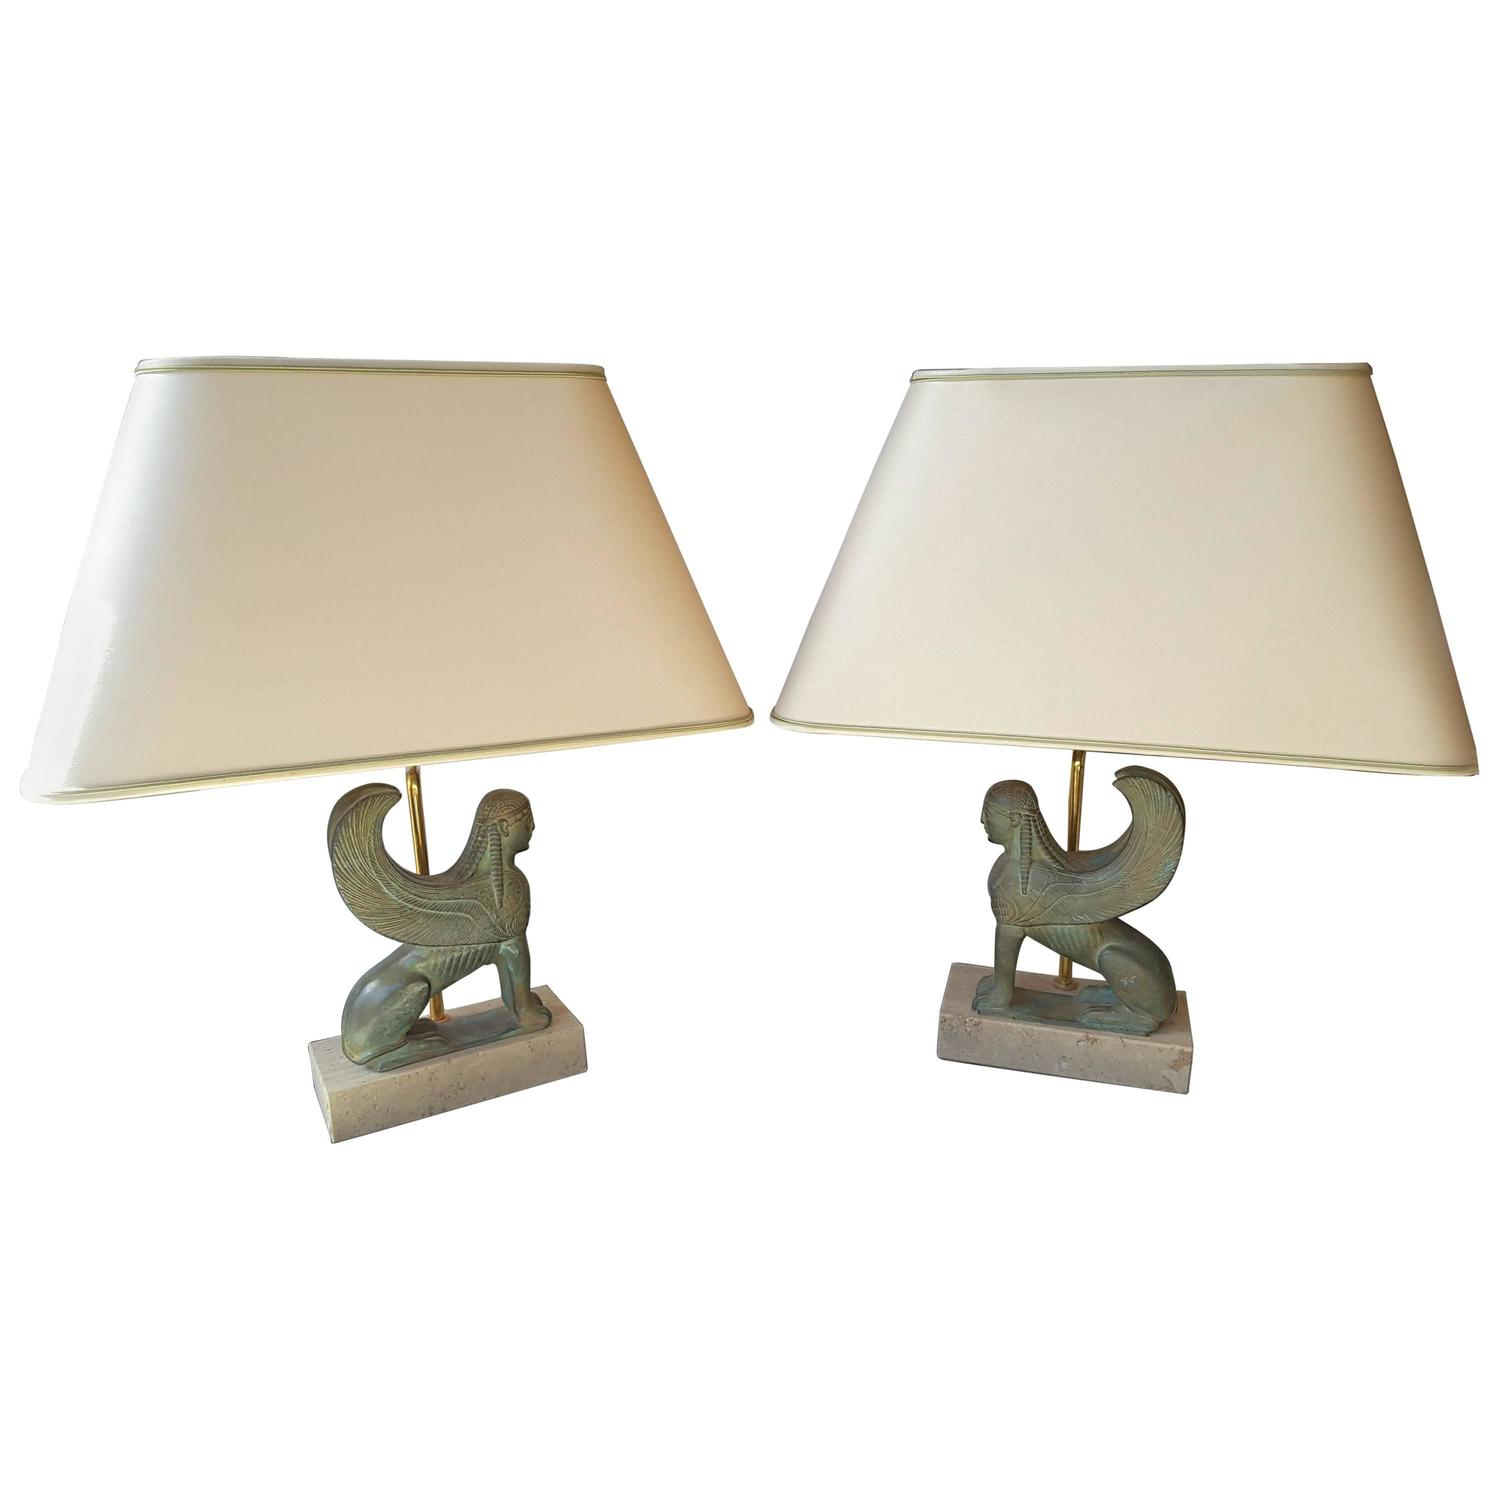 maison le dauphin france vintage pair of exceptional sphinx table lamps for sale at 1stdibs. Black Bedroom Furniture Sets. Home Design Ideas